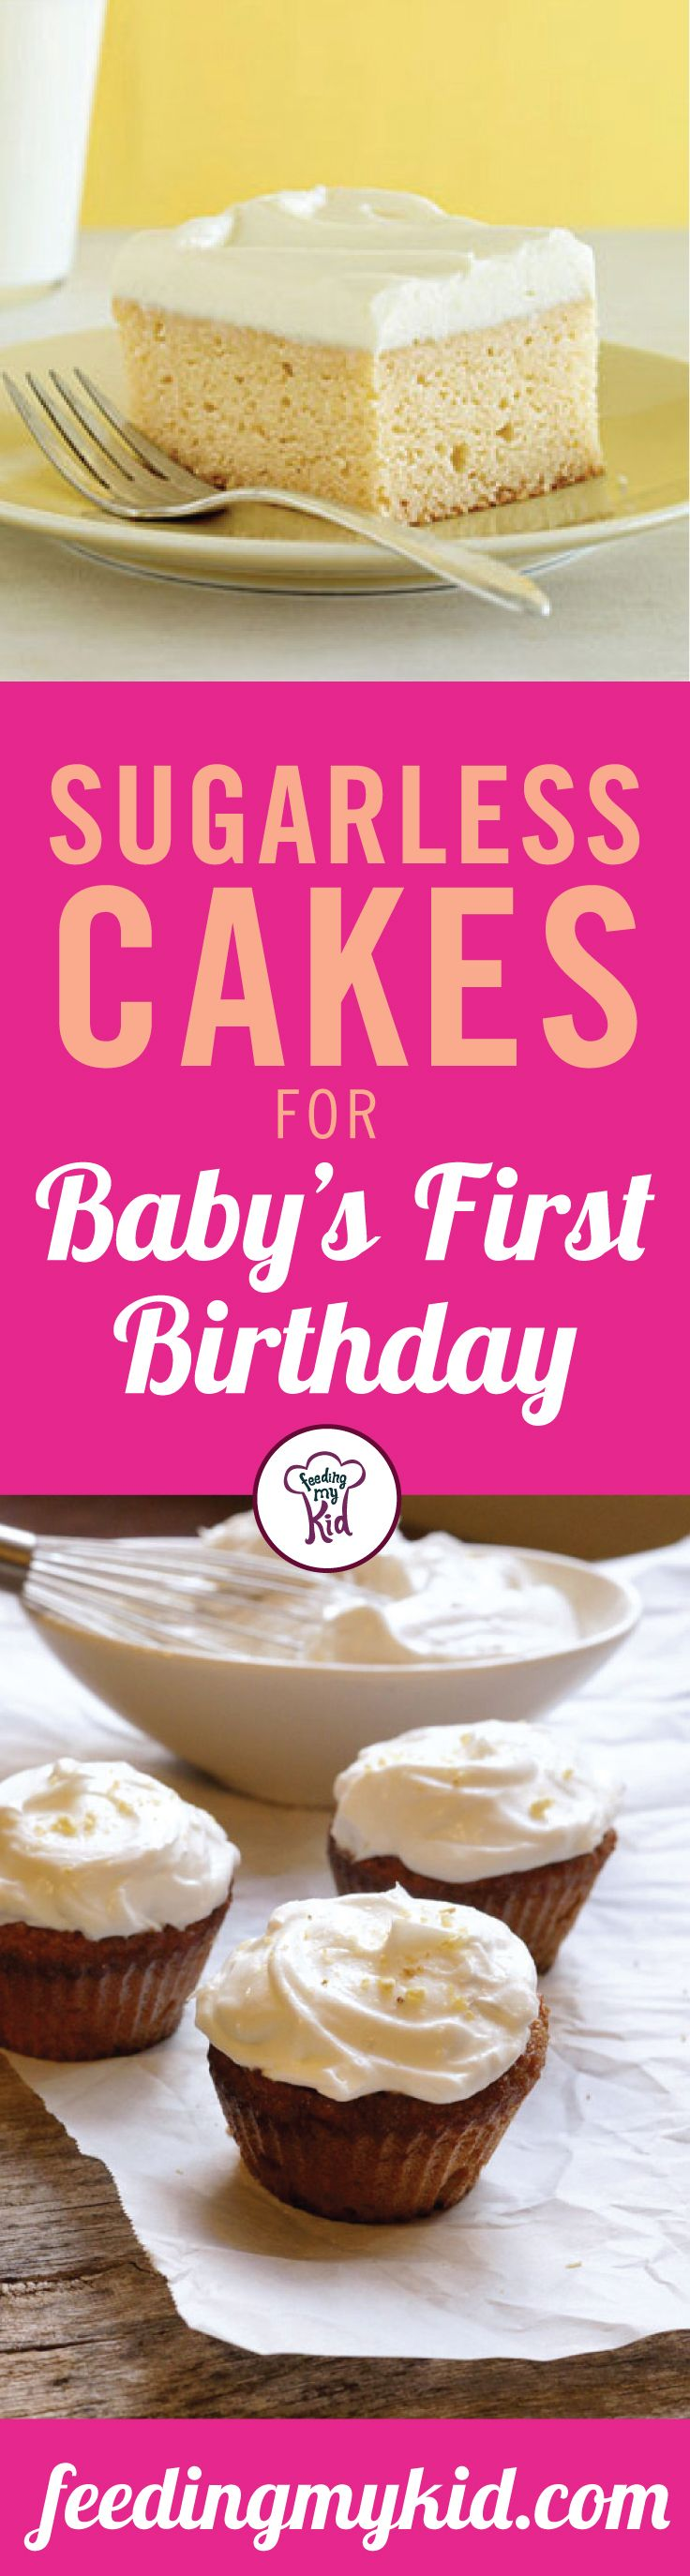 13 Sugarless Cakes for Babys First Birthday Sugar free